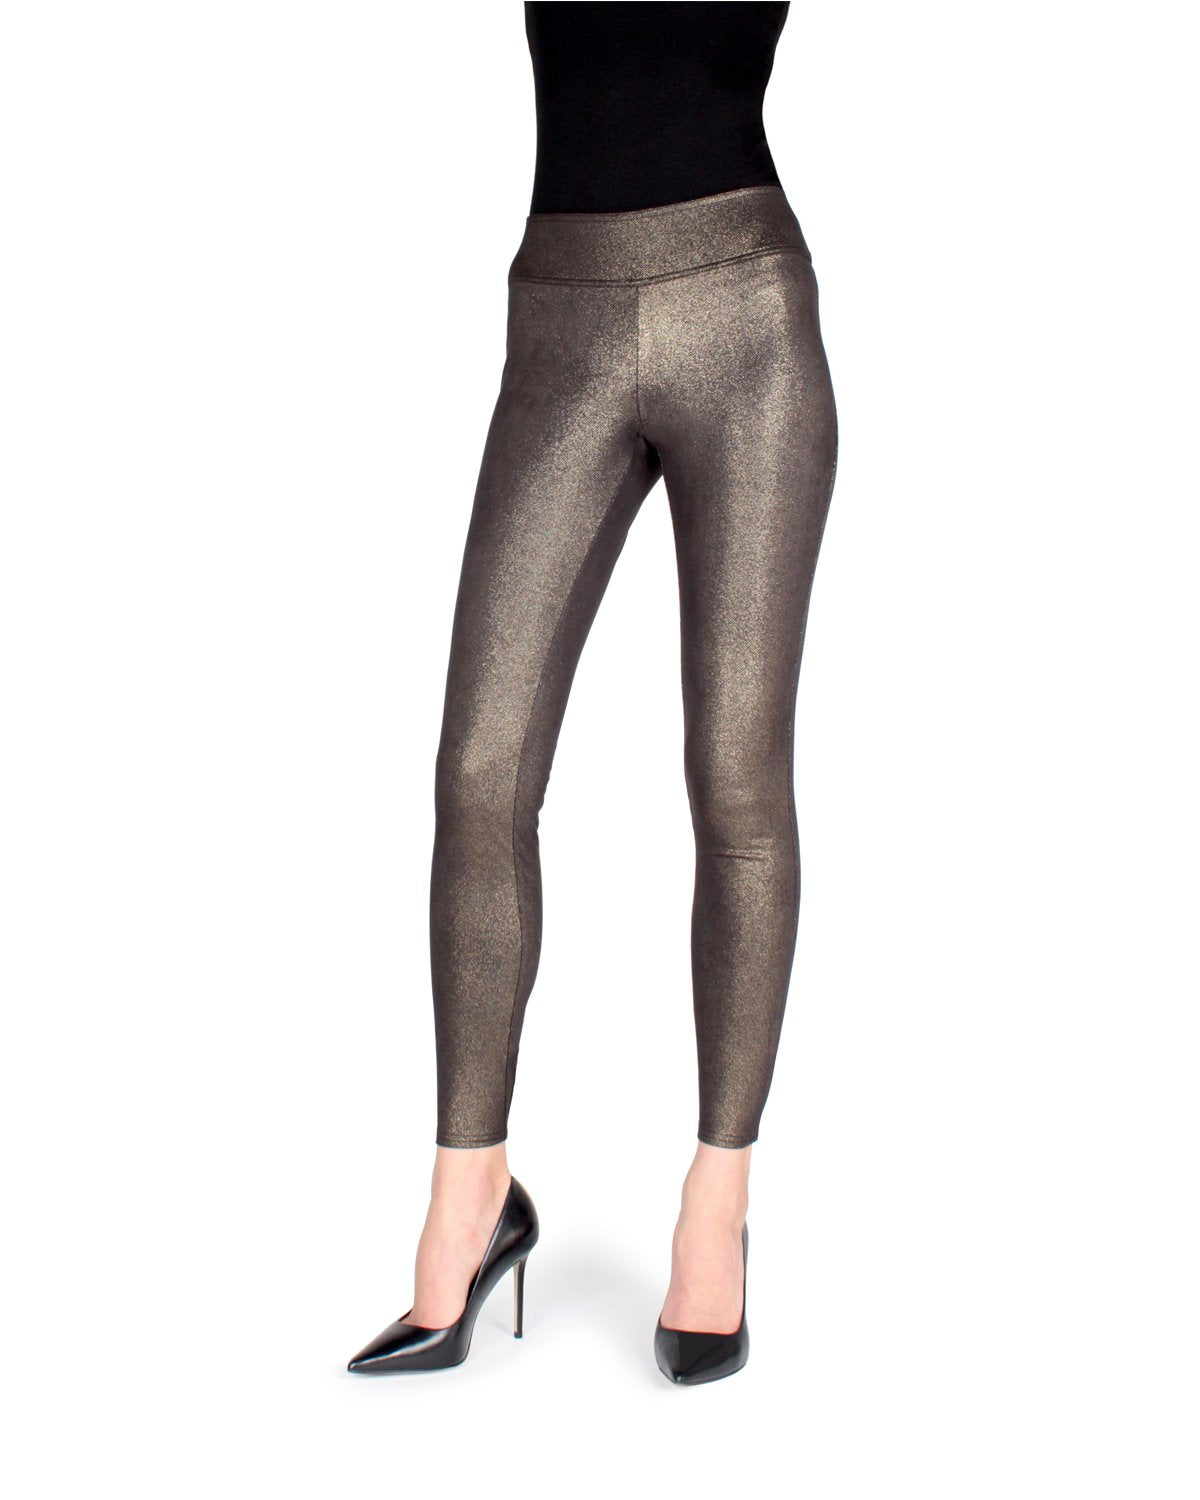 Alliage Sparkle Shaping Legging -MSL-016 Black/Gold-